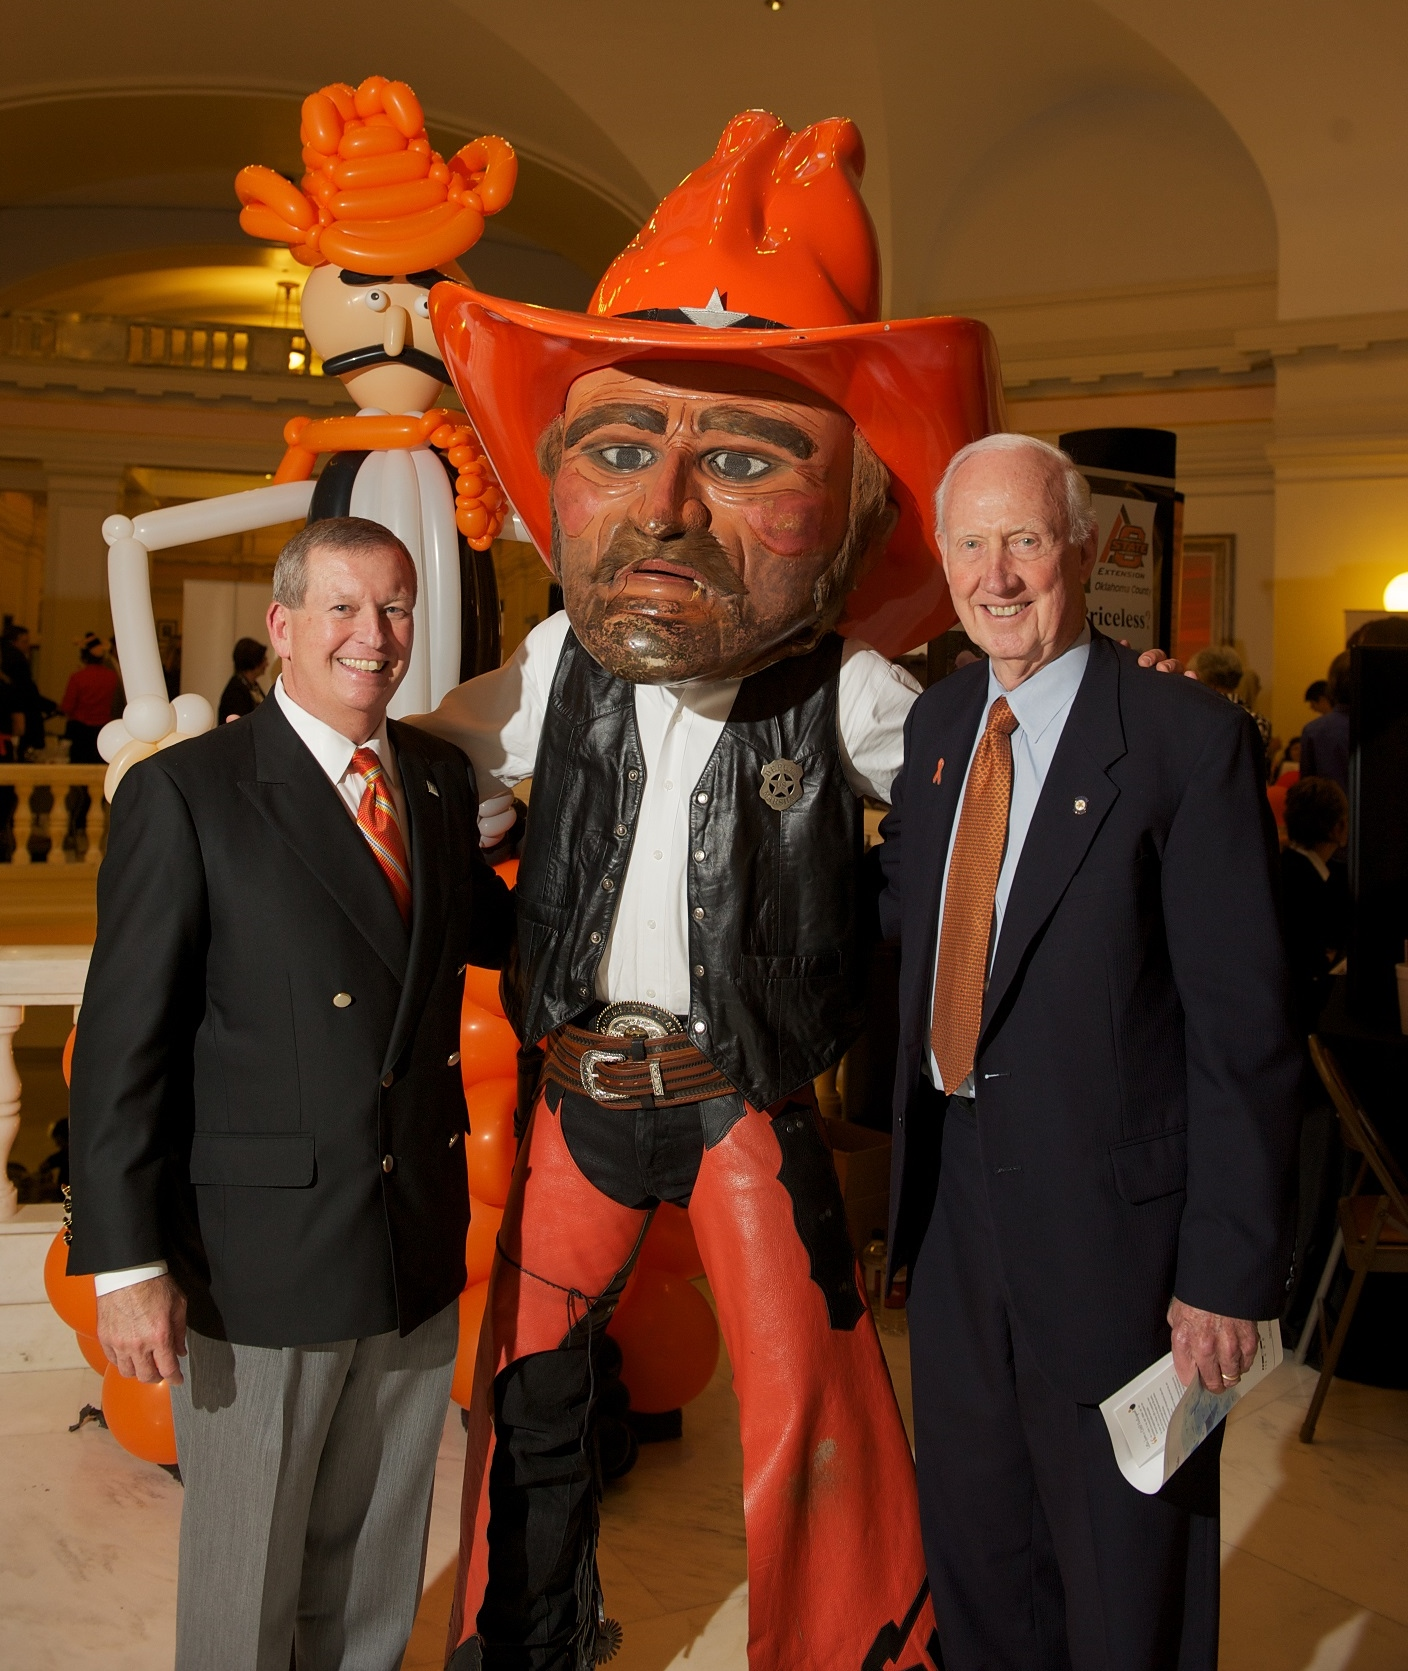 OSU's Gary Sherrer: A life well lived in service to others